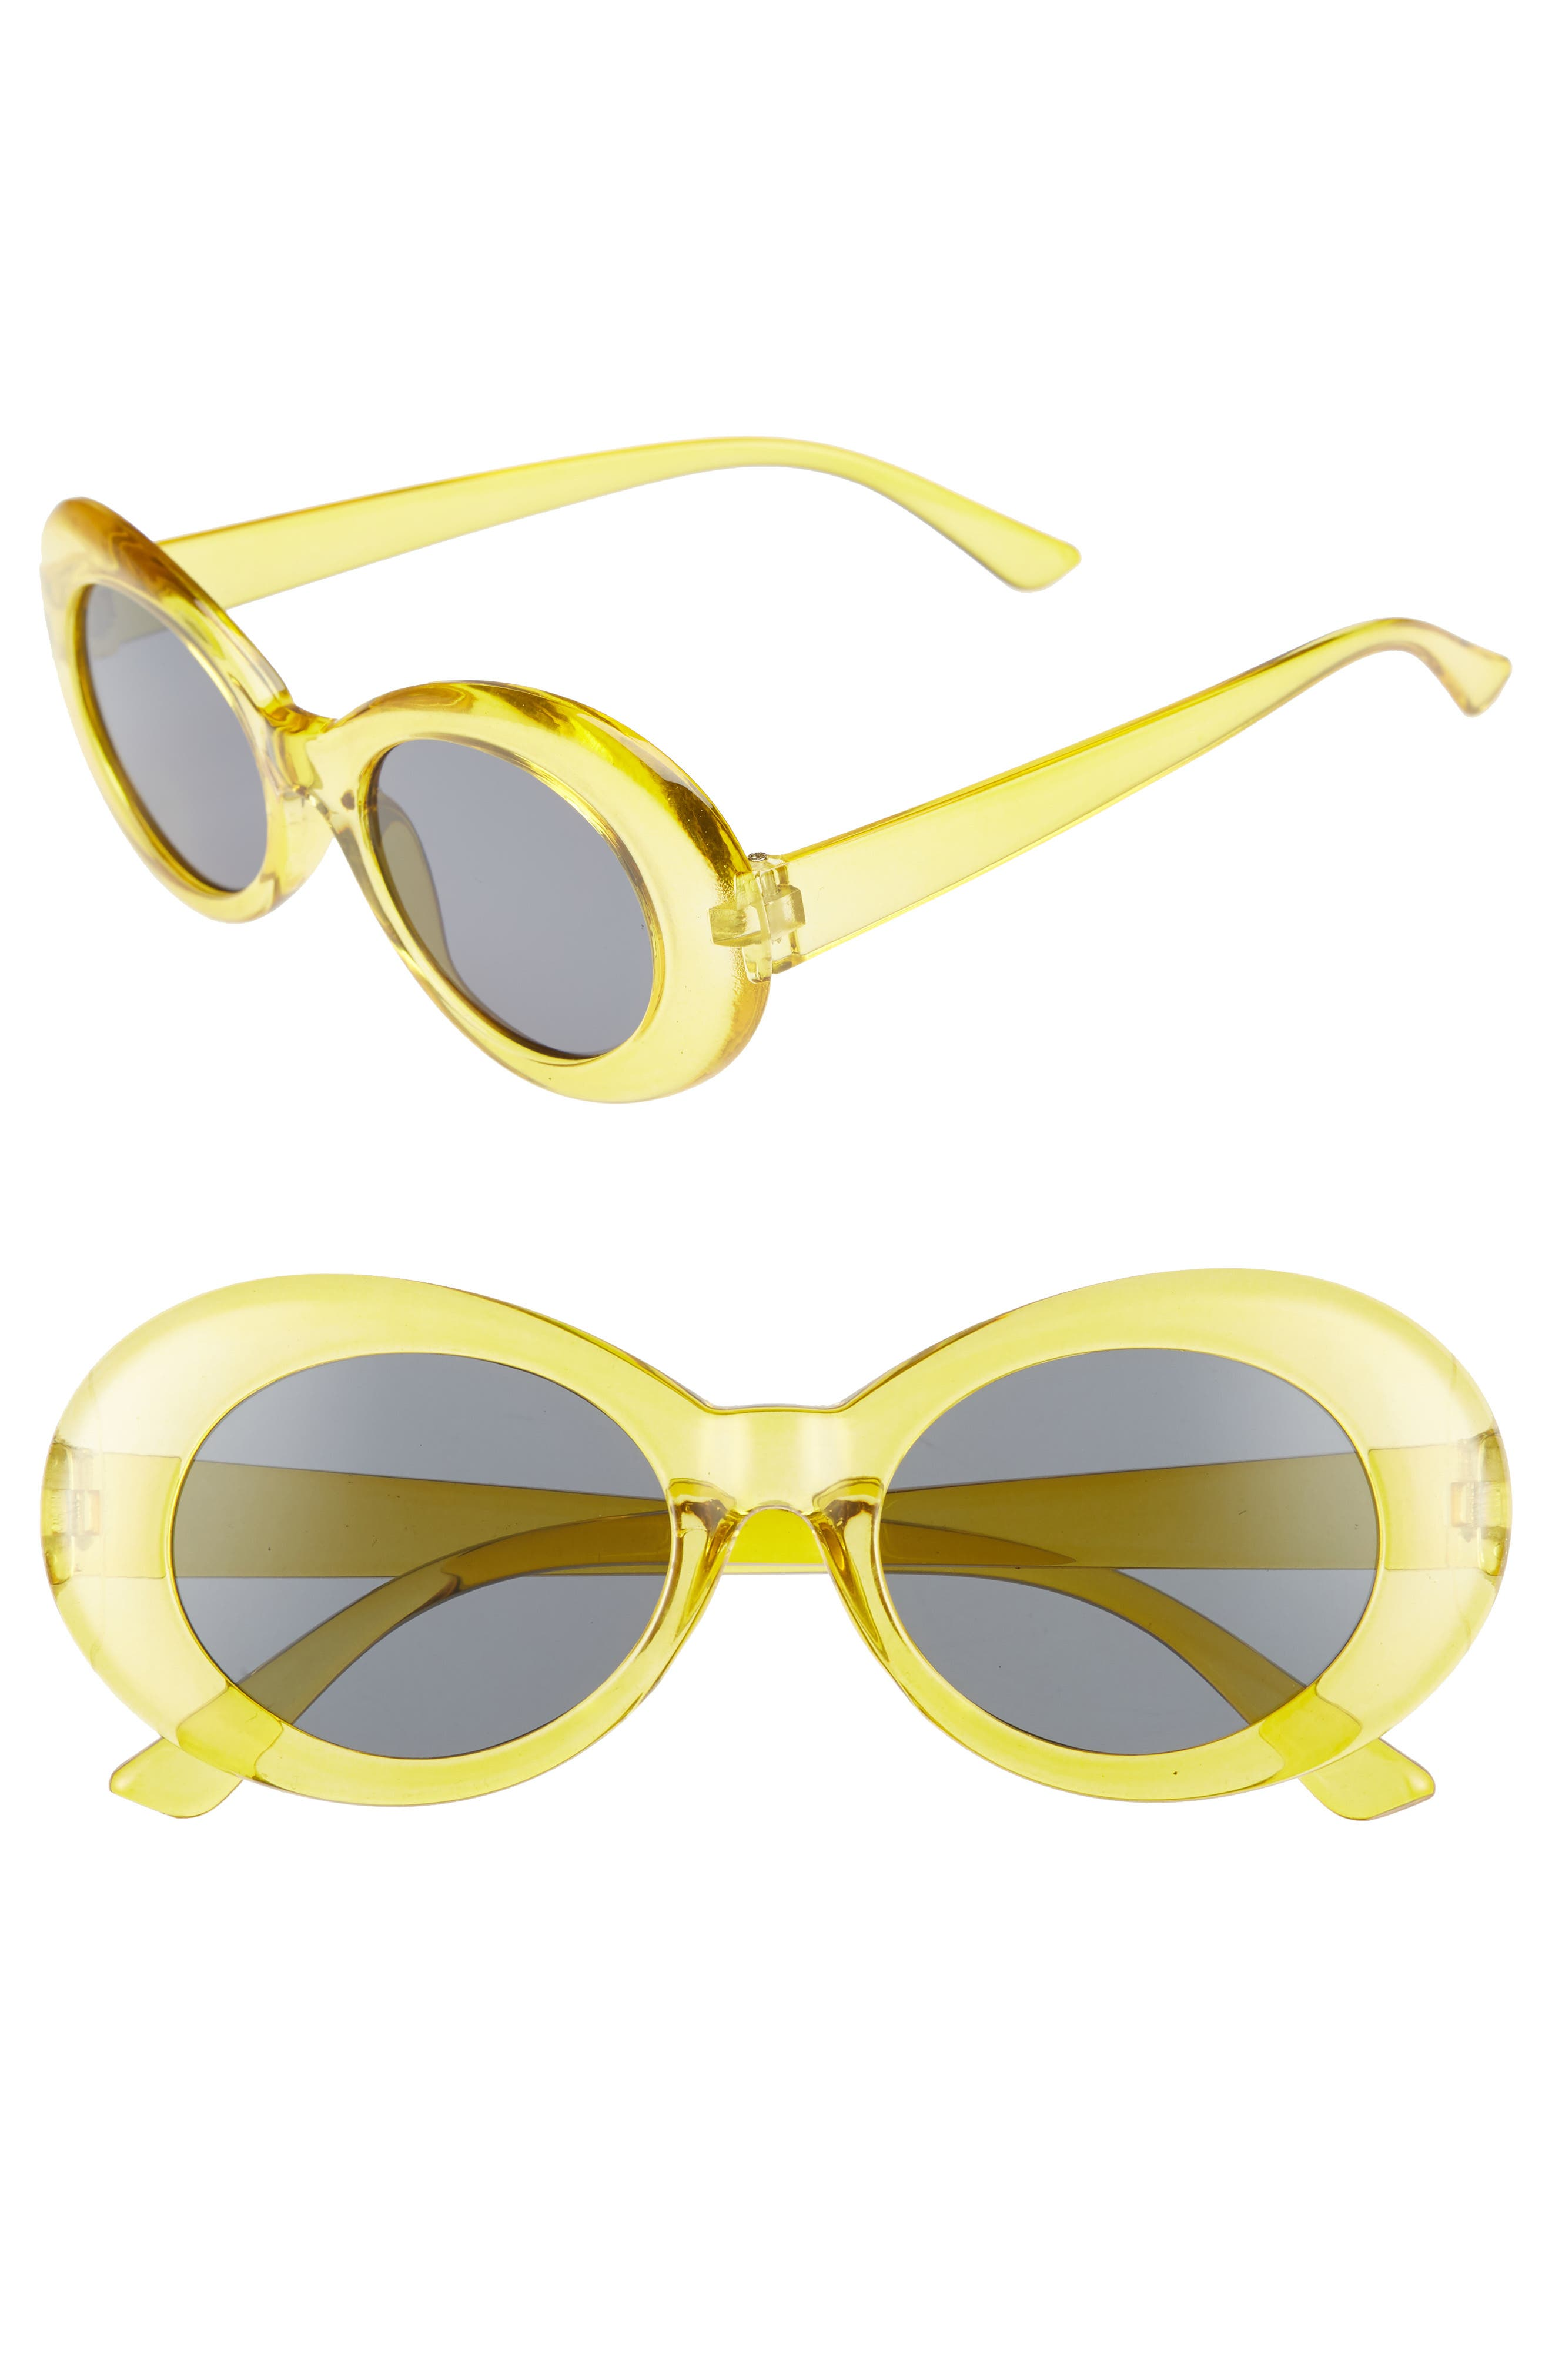 50mm Round Sunglasses,                         Main,                         color, Clear Yellow